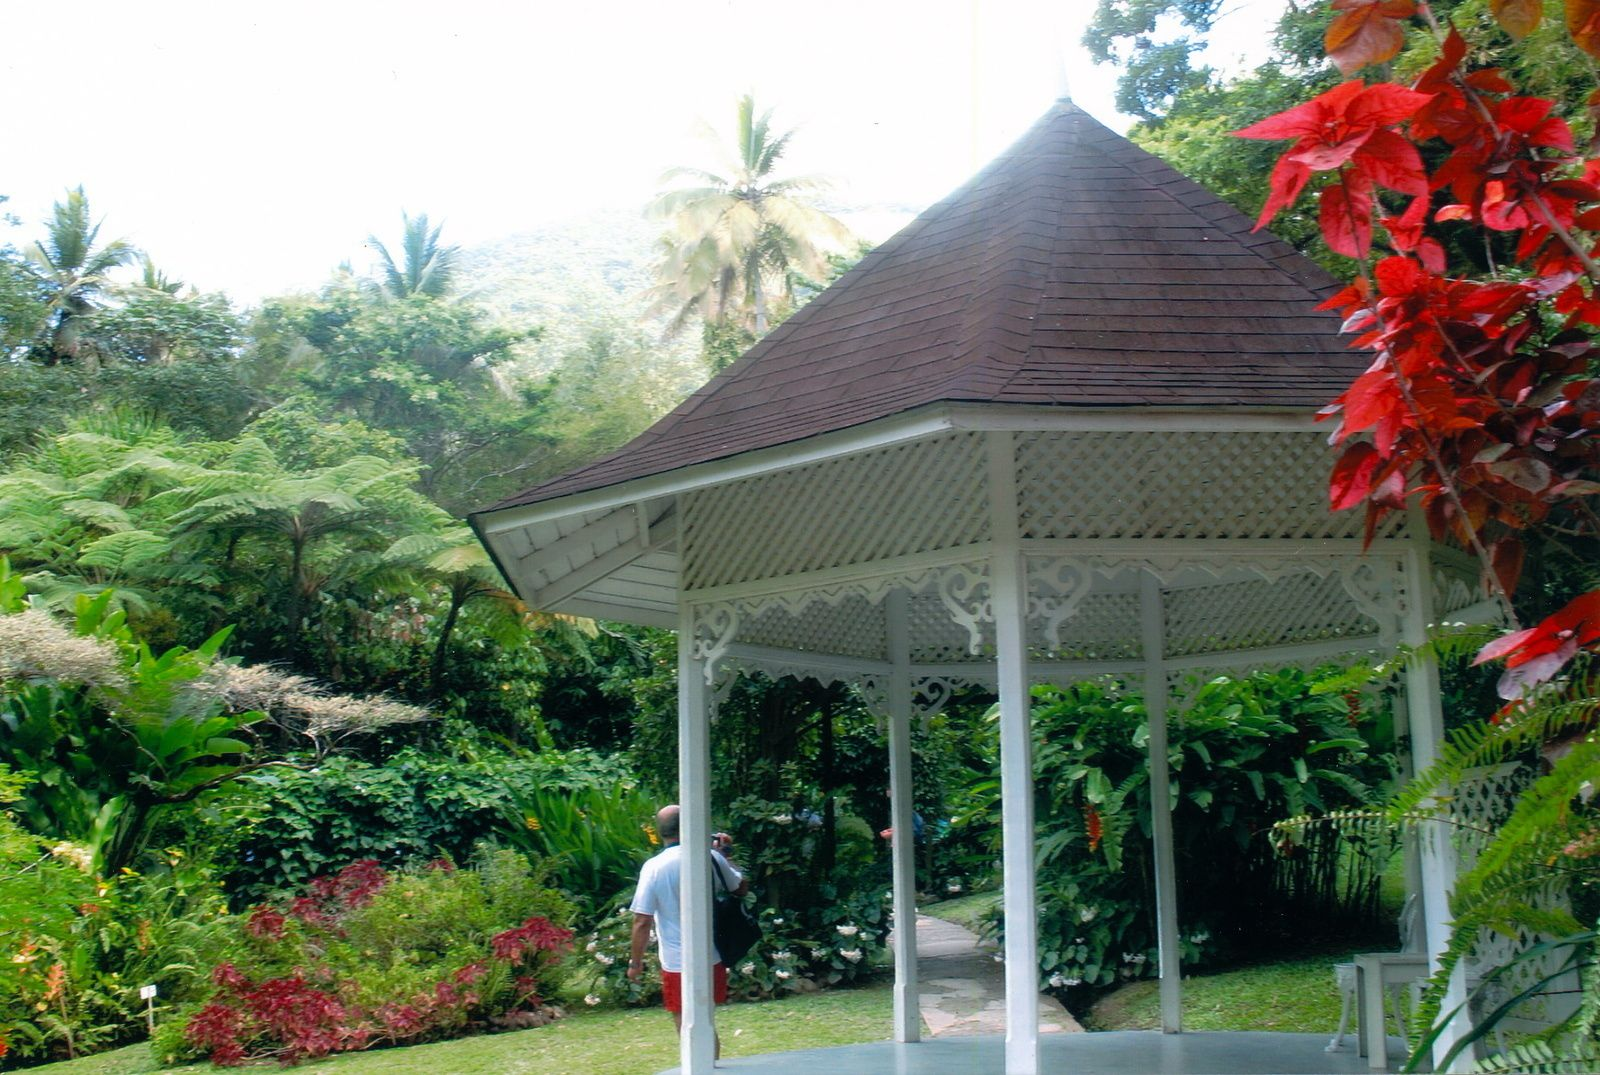 Diamond Botanical garden en 2007